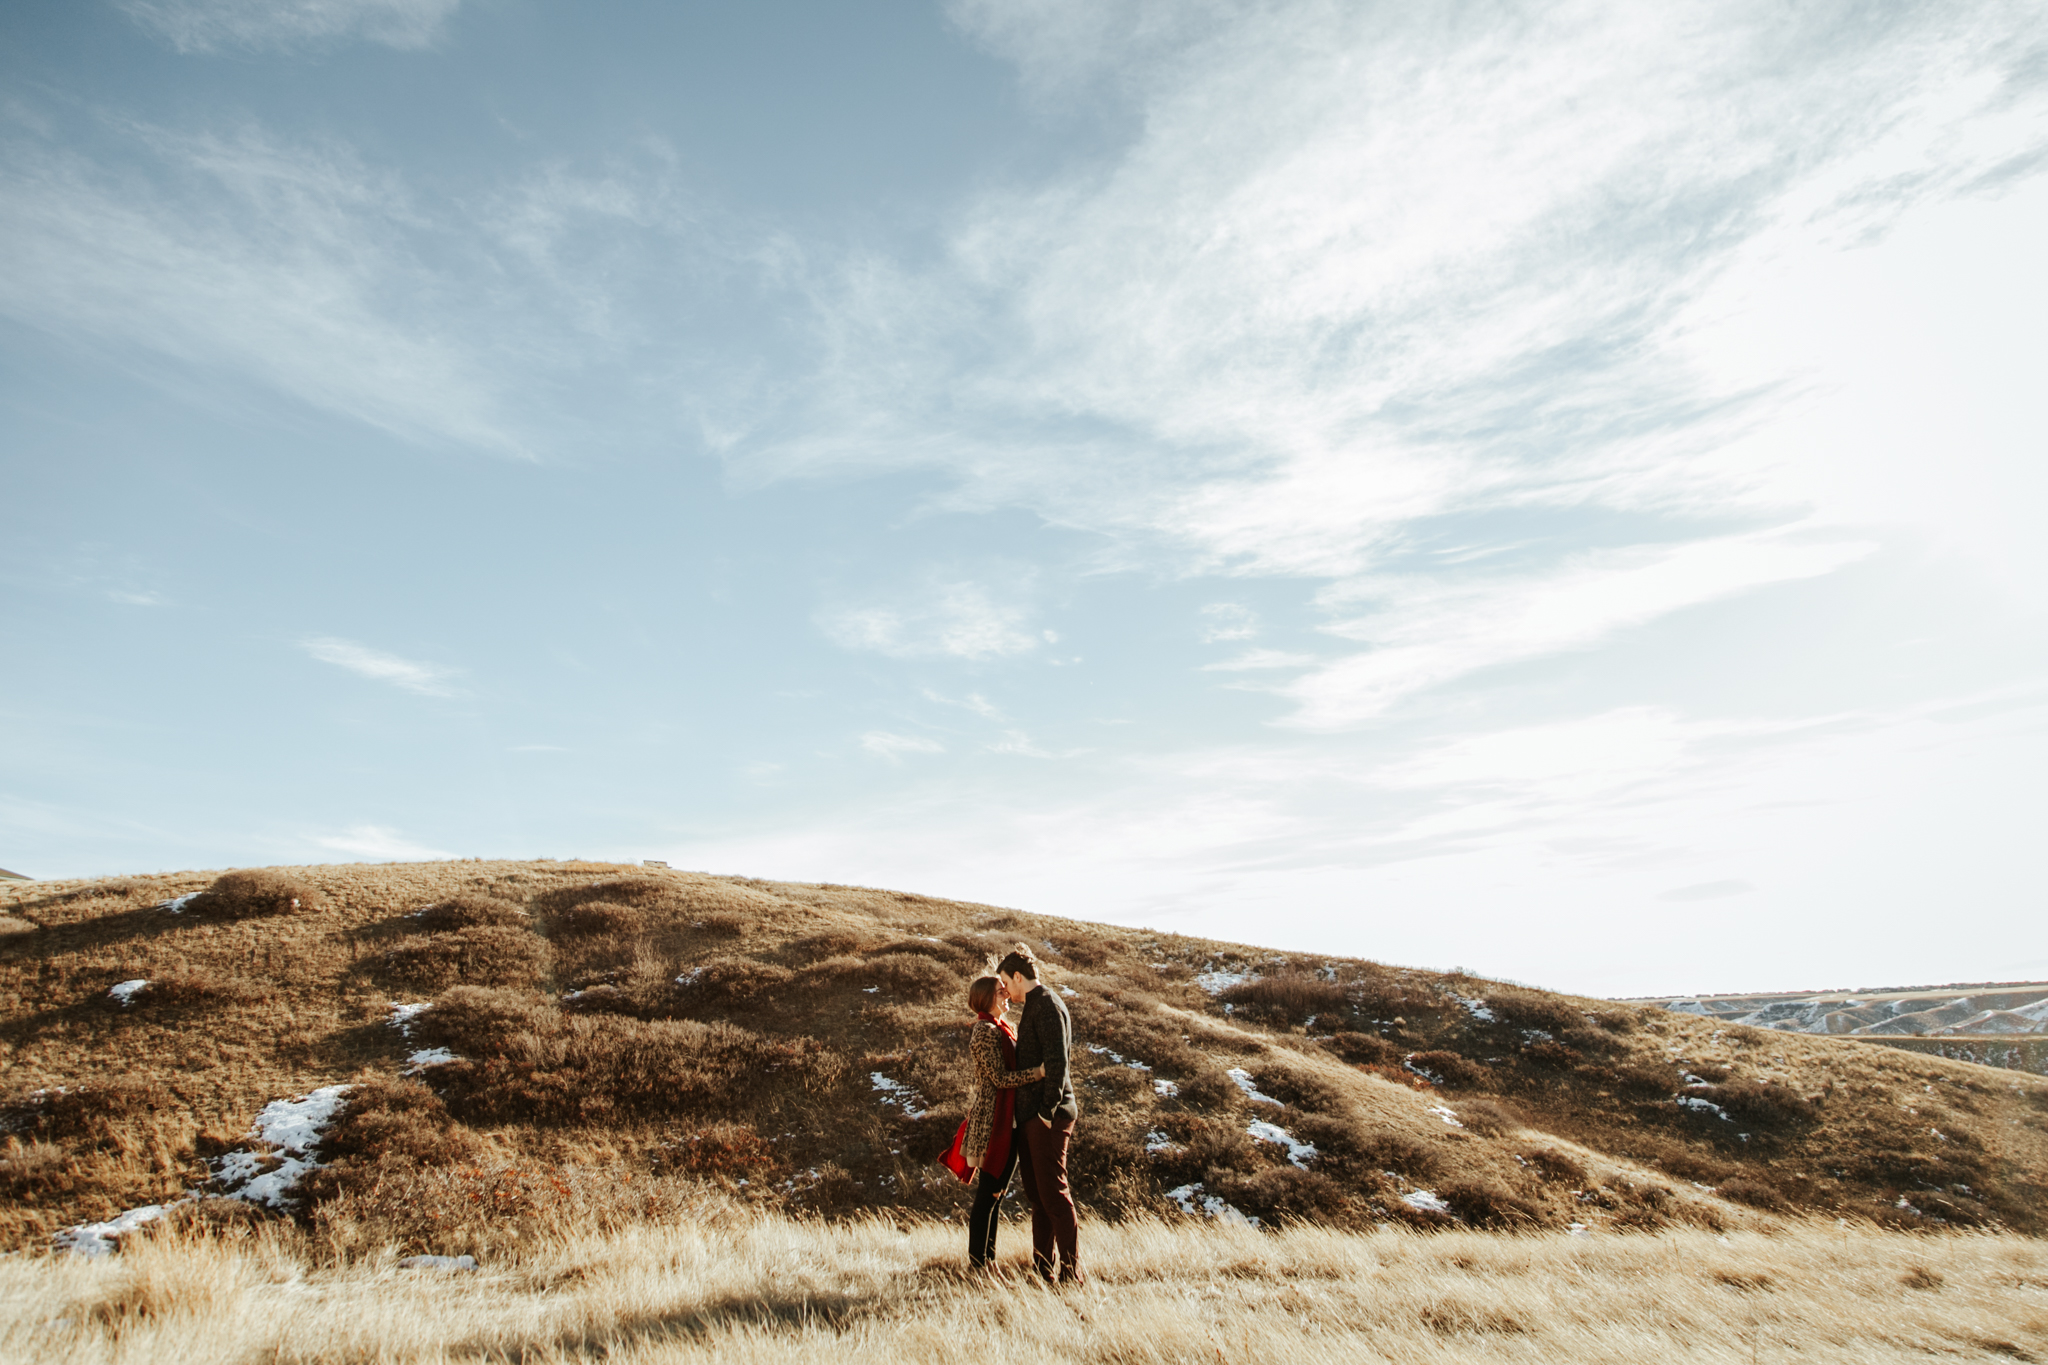 lethbridge-photographer-love-and-be-loved-photography-winter-engagement-emma-tanner-picture-image-photo-6.jpg